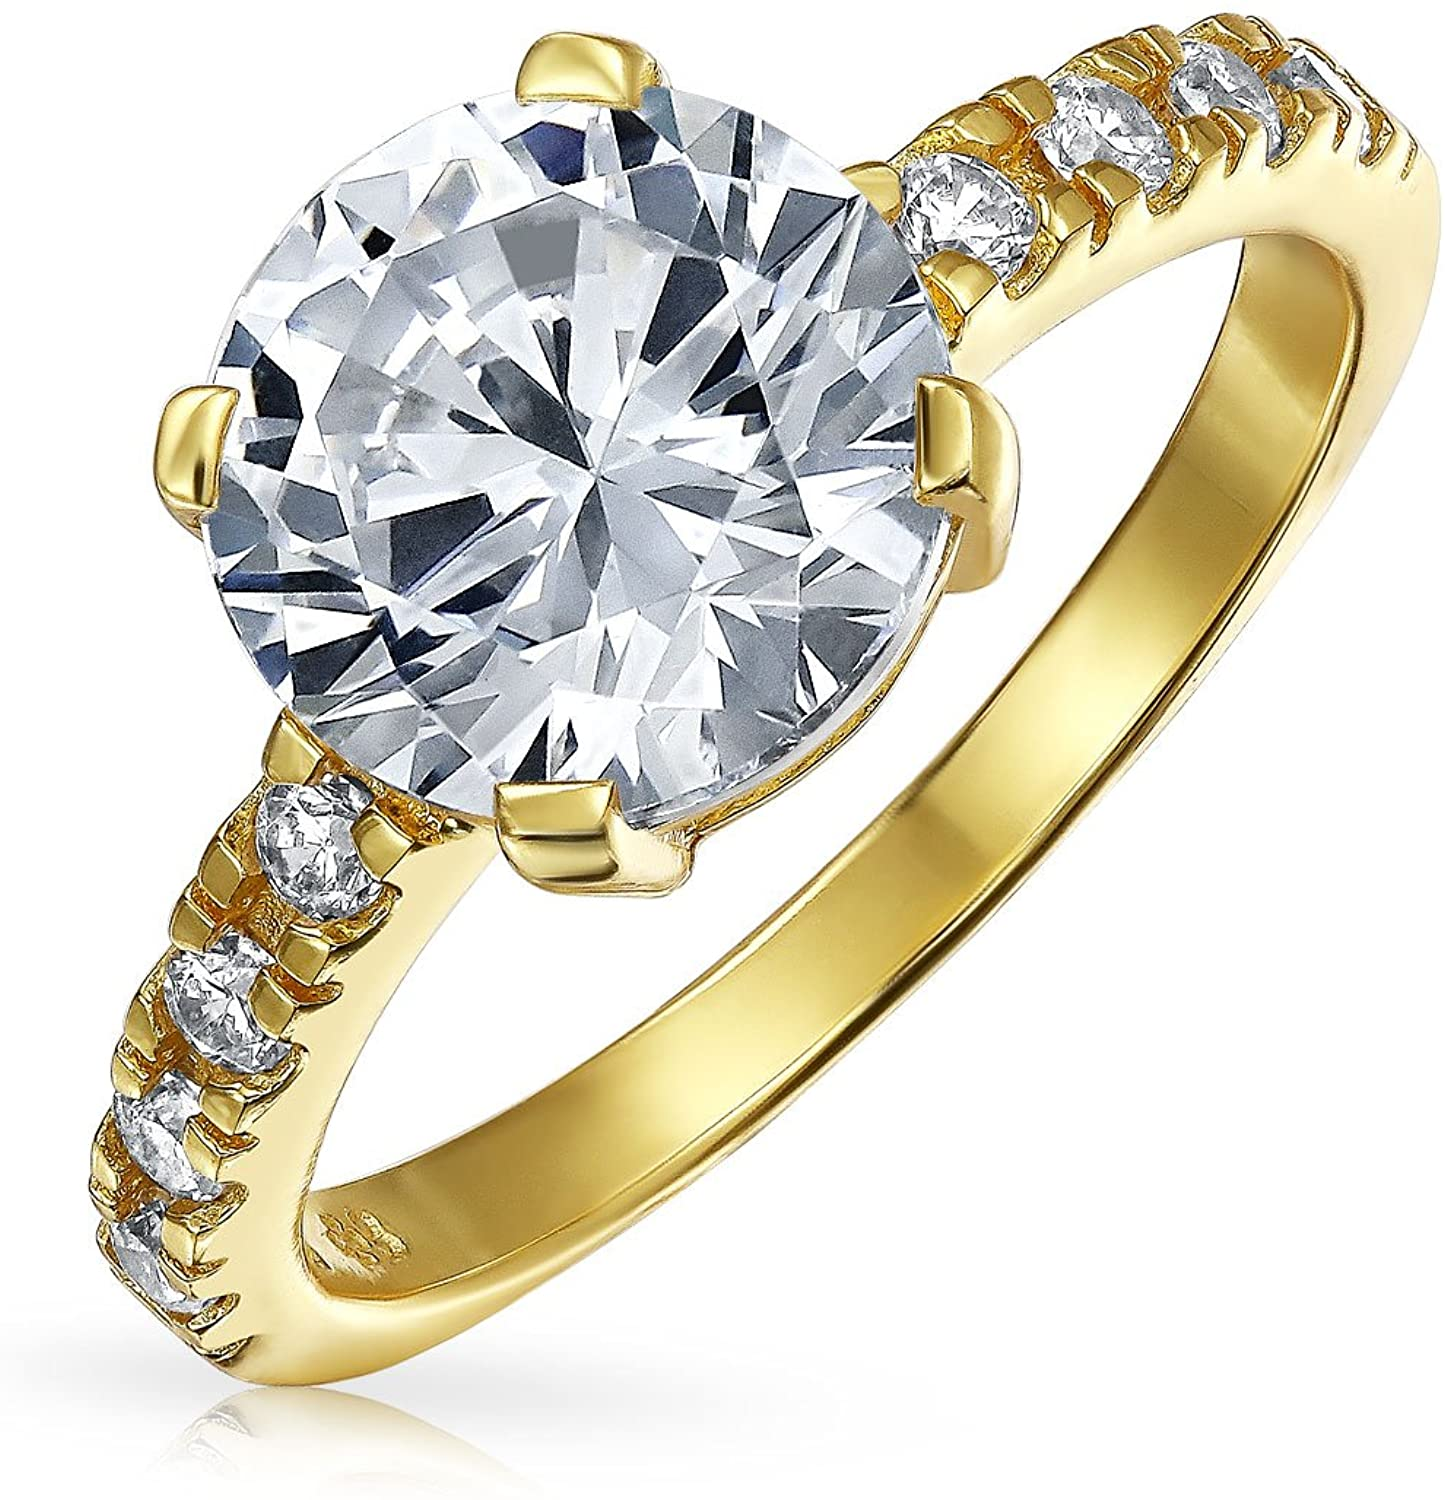 4CT Round Brilliant Solitaire AAA CZ Cubic Zirconia Engagement Ring For Women 2MM Band 14K Gold Plated Sterling Silver